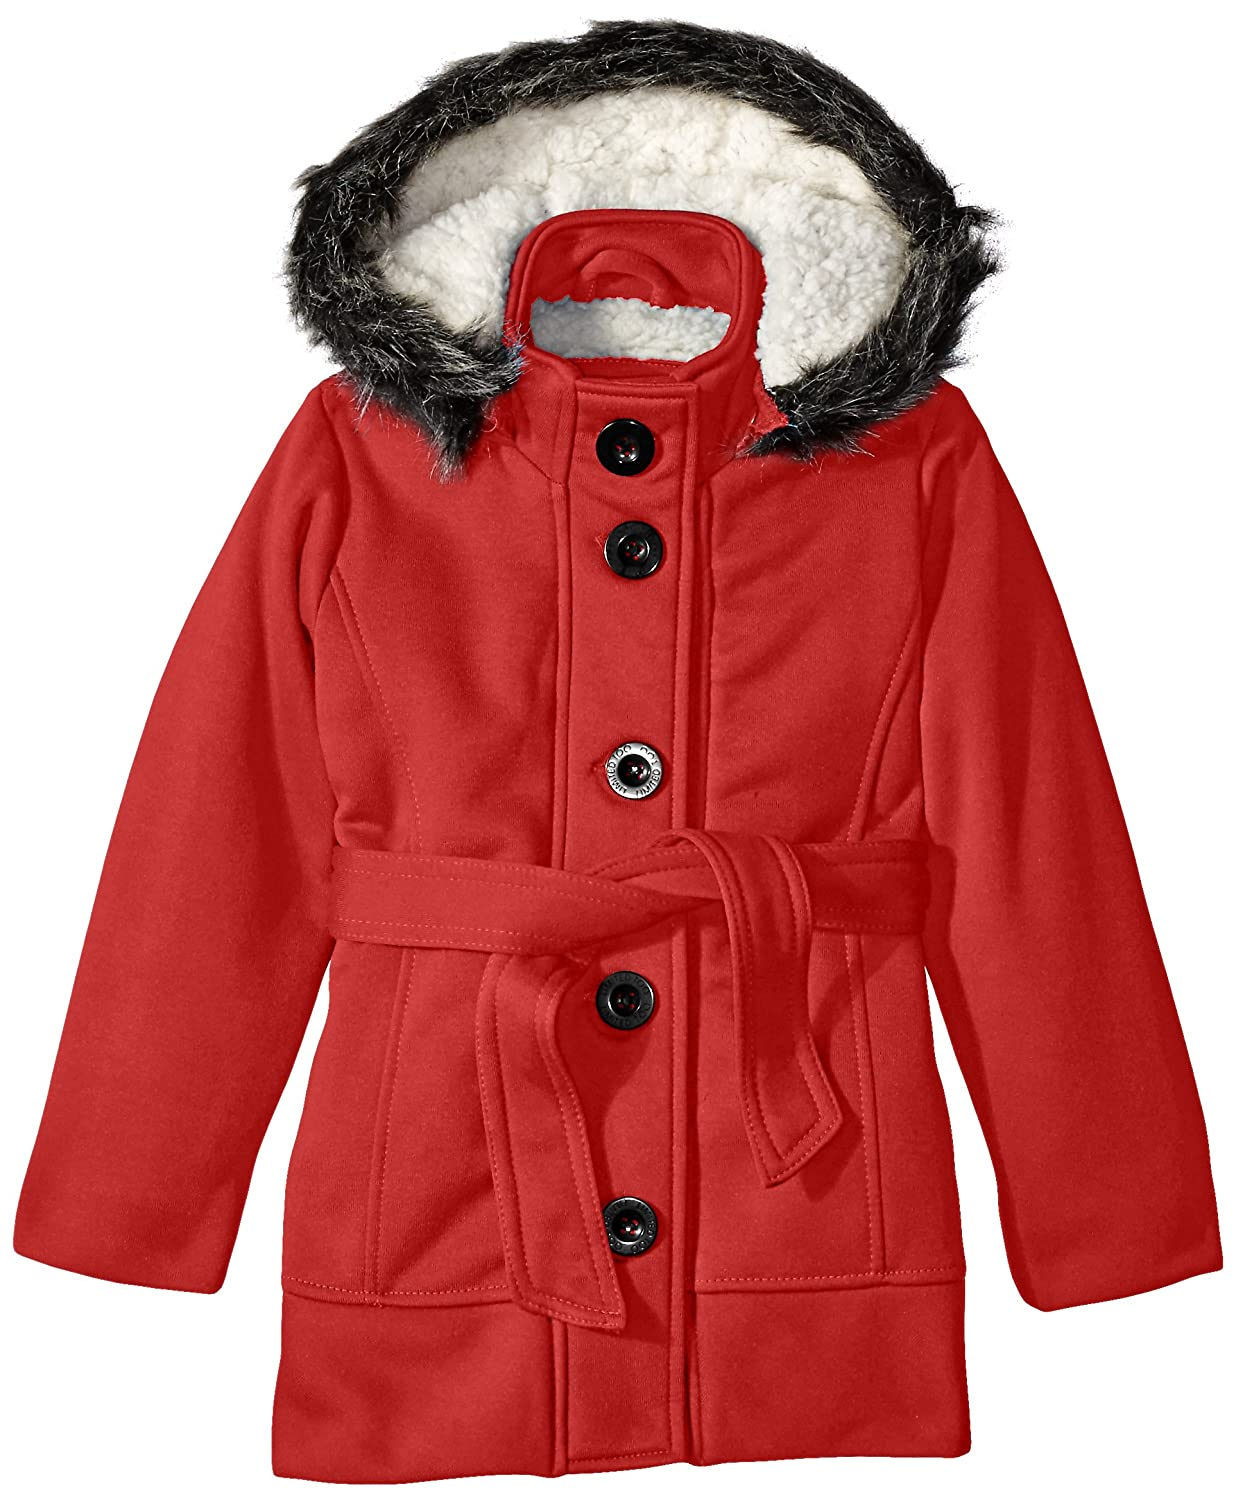 Limited Too Girls' Belted Fleece Jacket 72078